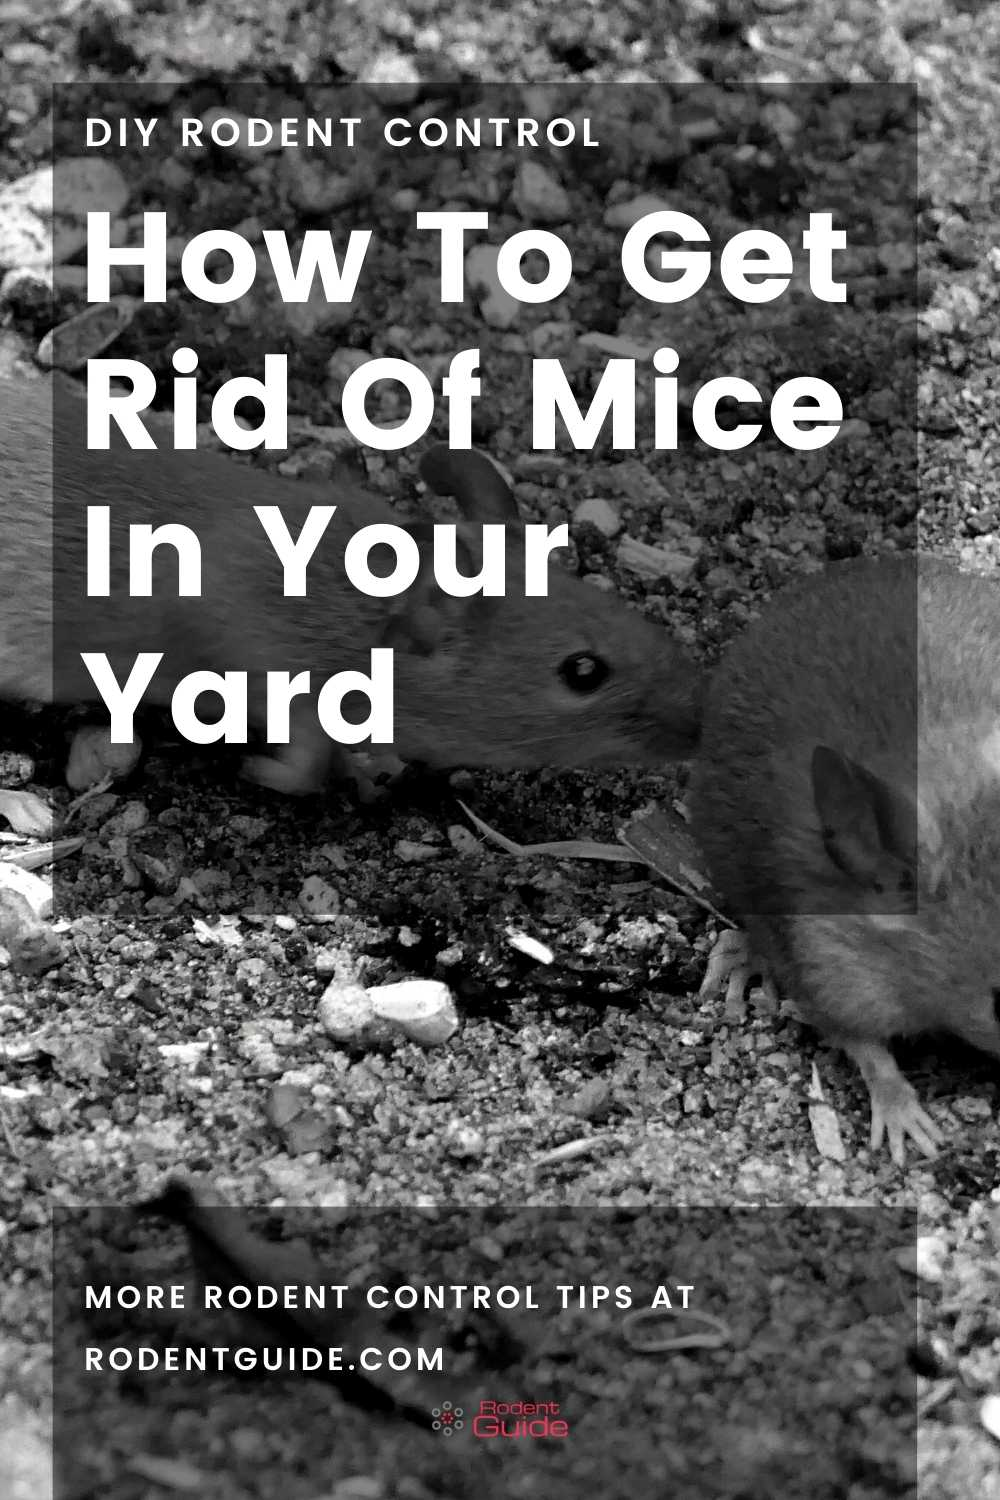 How To Get Rid Of Mice From Your Yard - DIY Rodent Control